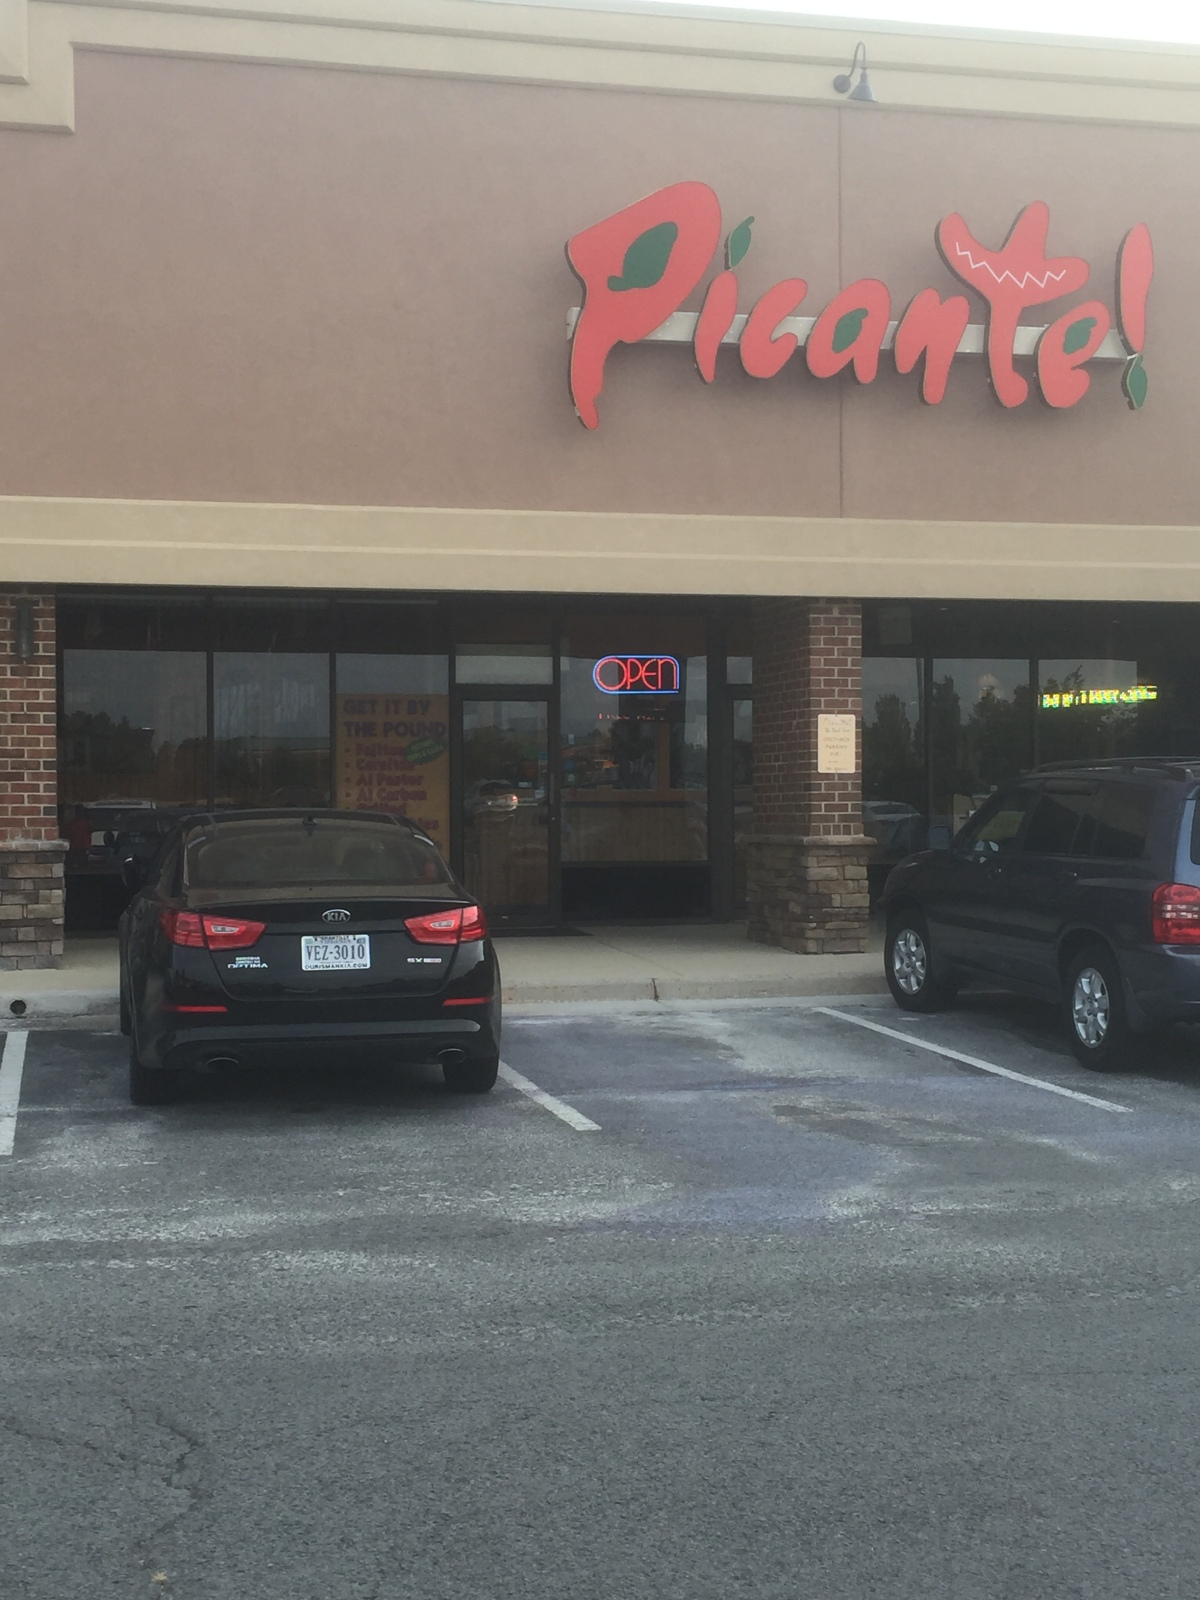 Picante! – A Restaurant With Social Media Savvy